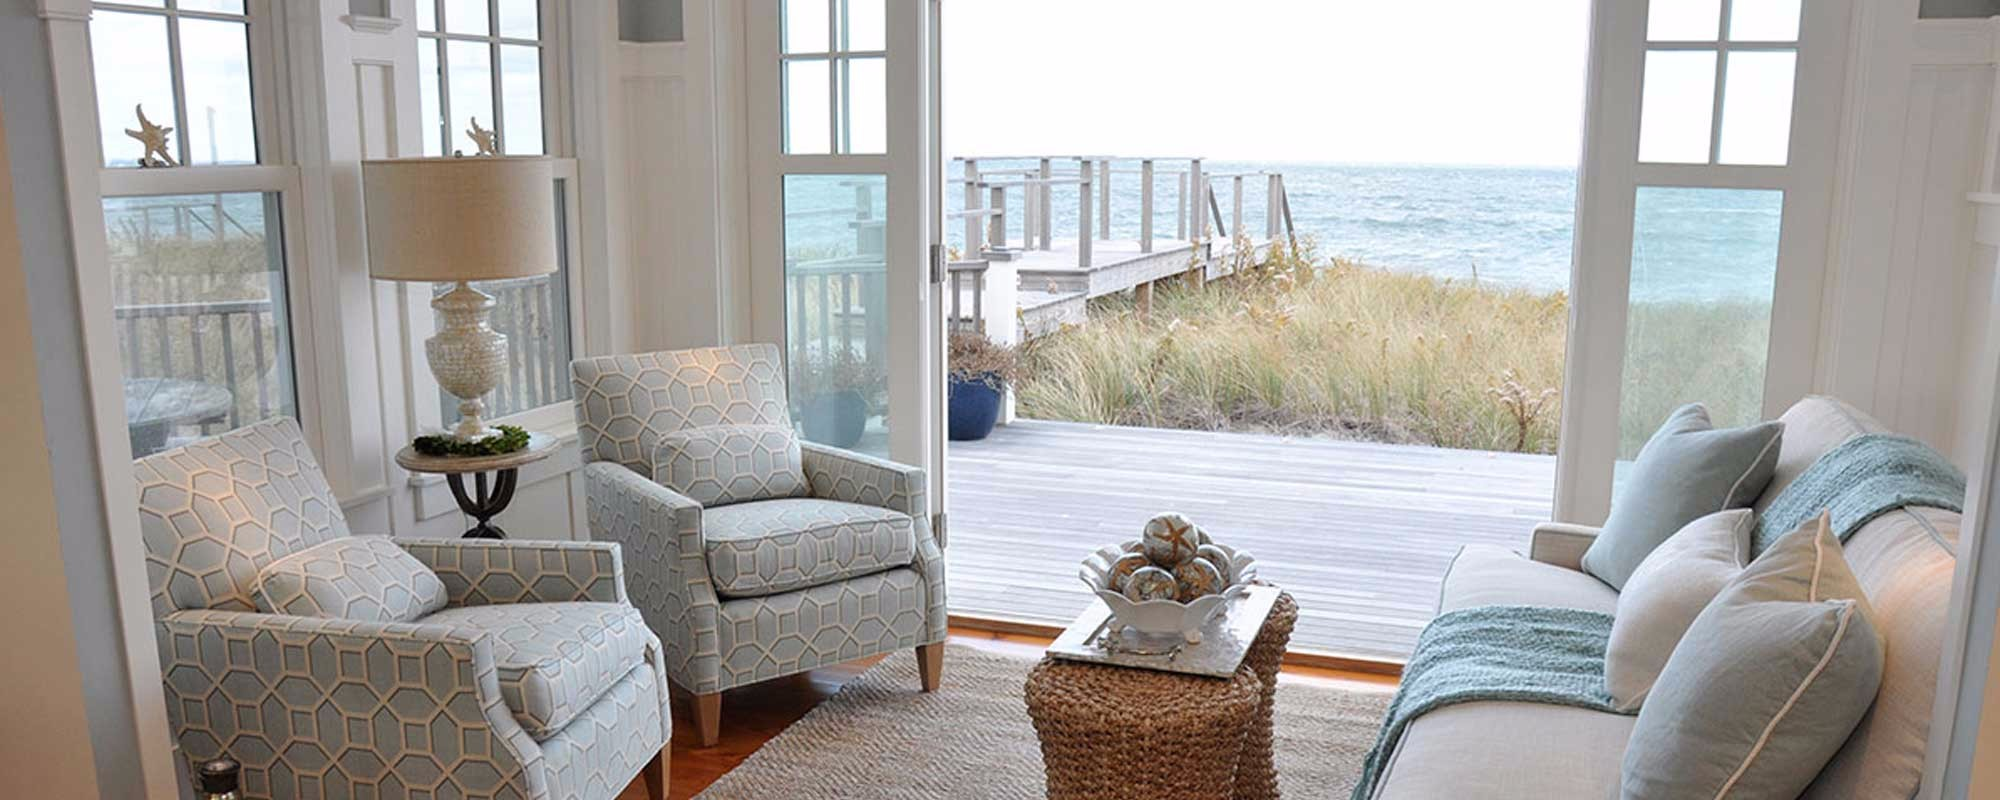 Interior design cape cod ma casabella interiors for Interior desings